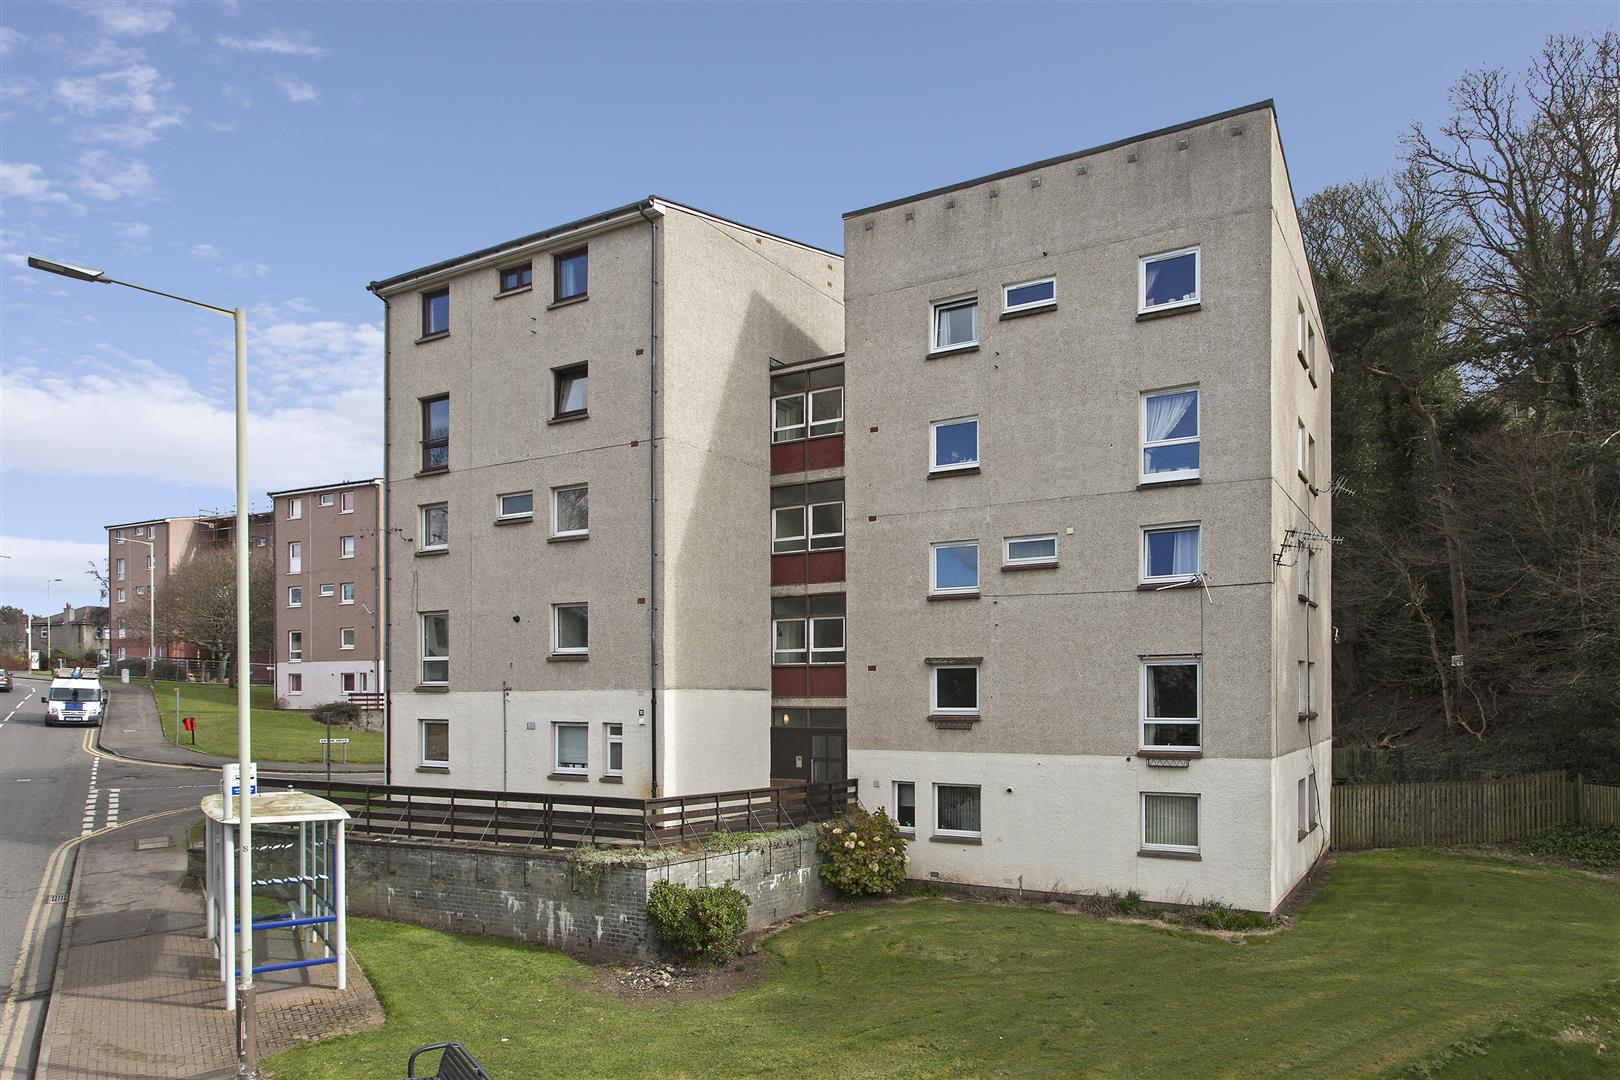 Flat 10, 12, Forthill Road, Broughty Ferry, Dundee, Angus, DD5 2JU, UK